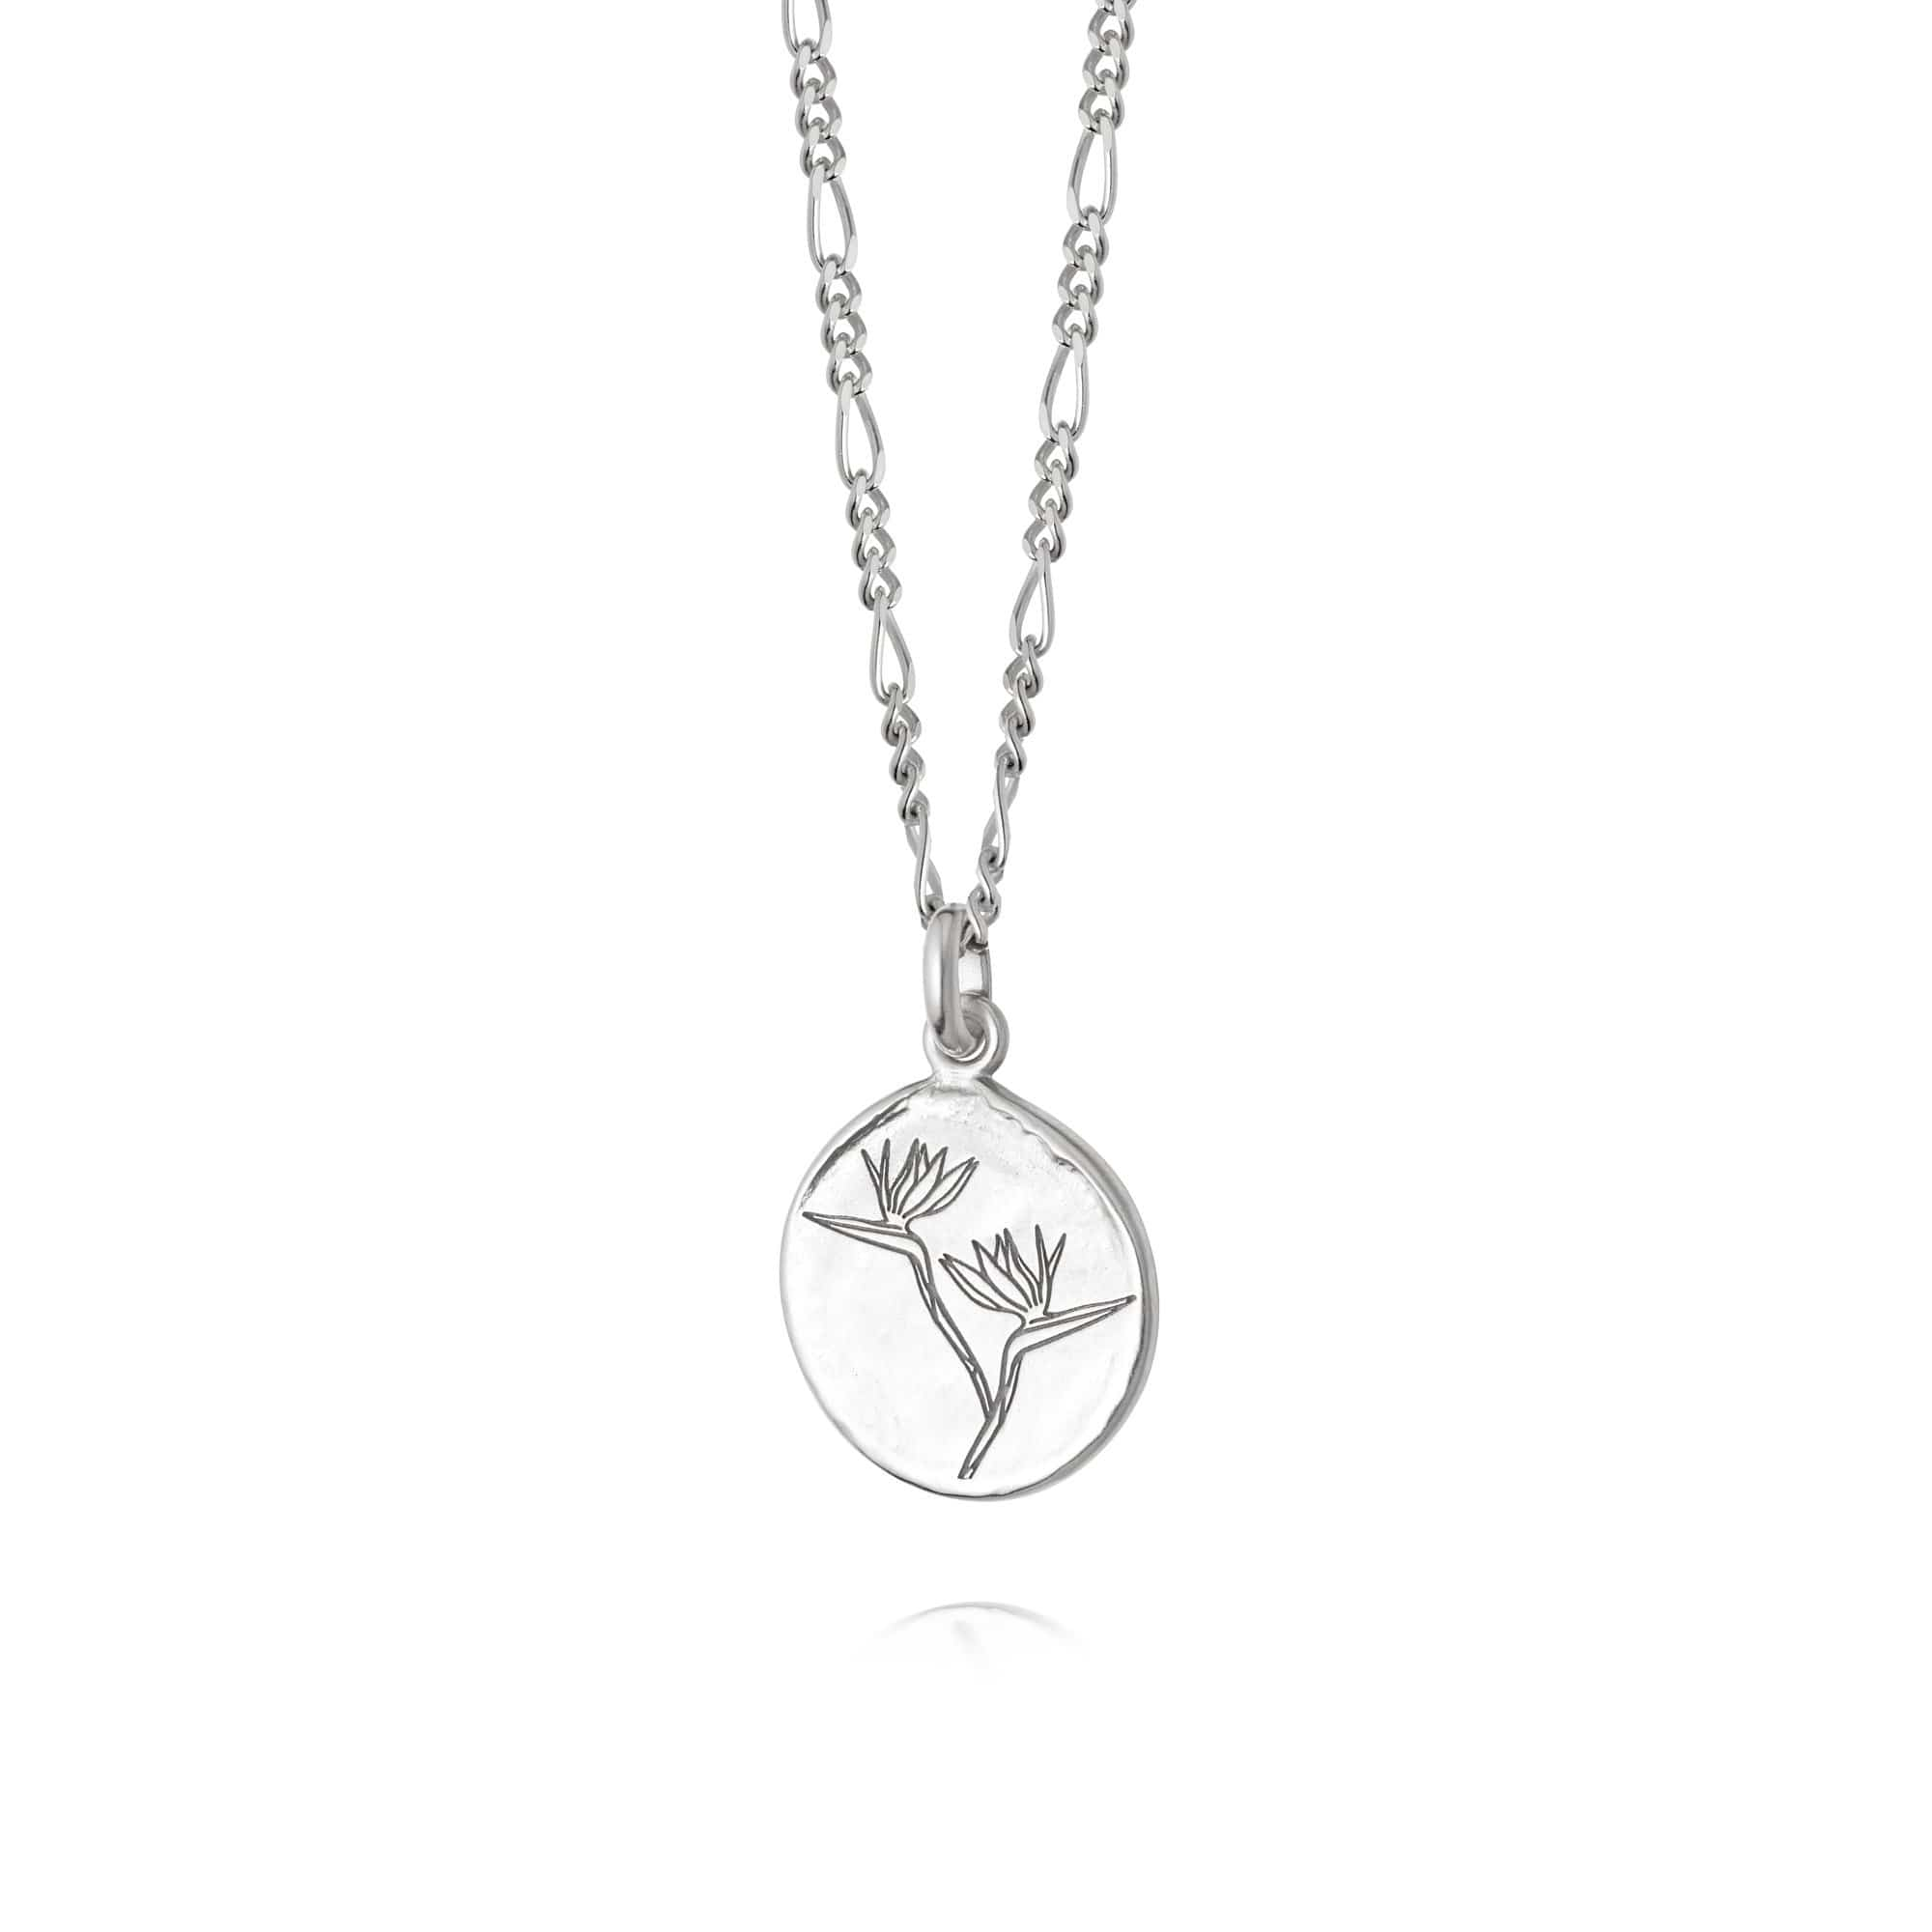 BIRD OF PARADISE FLOWER NECKLACE - STERLING SILVER